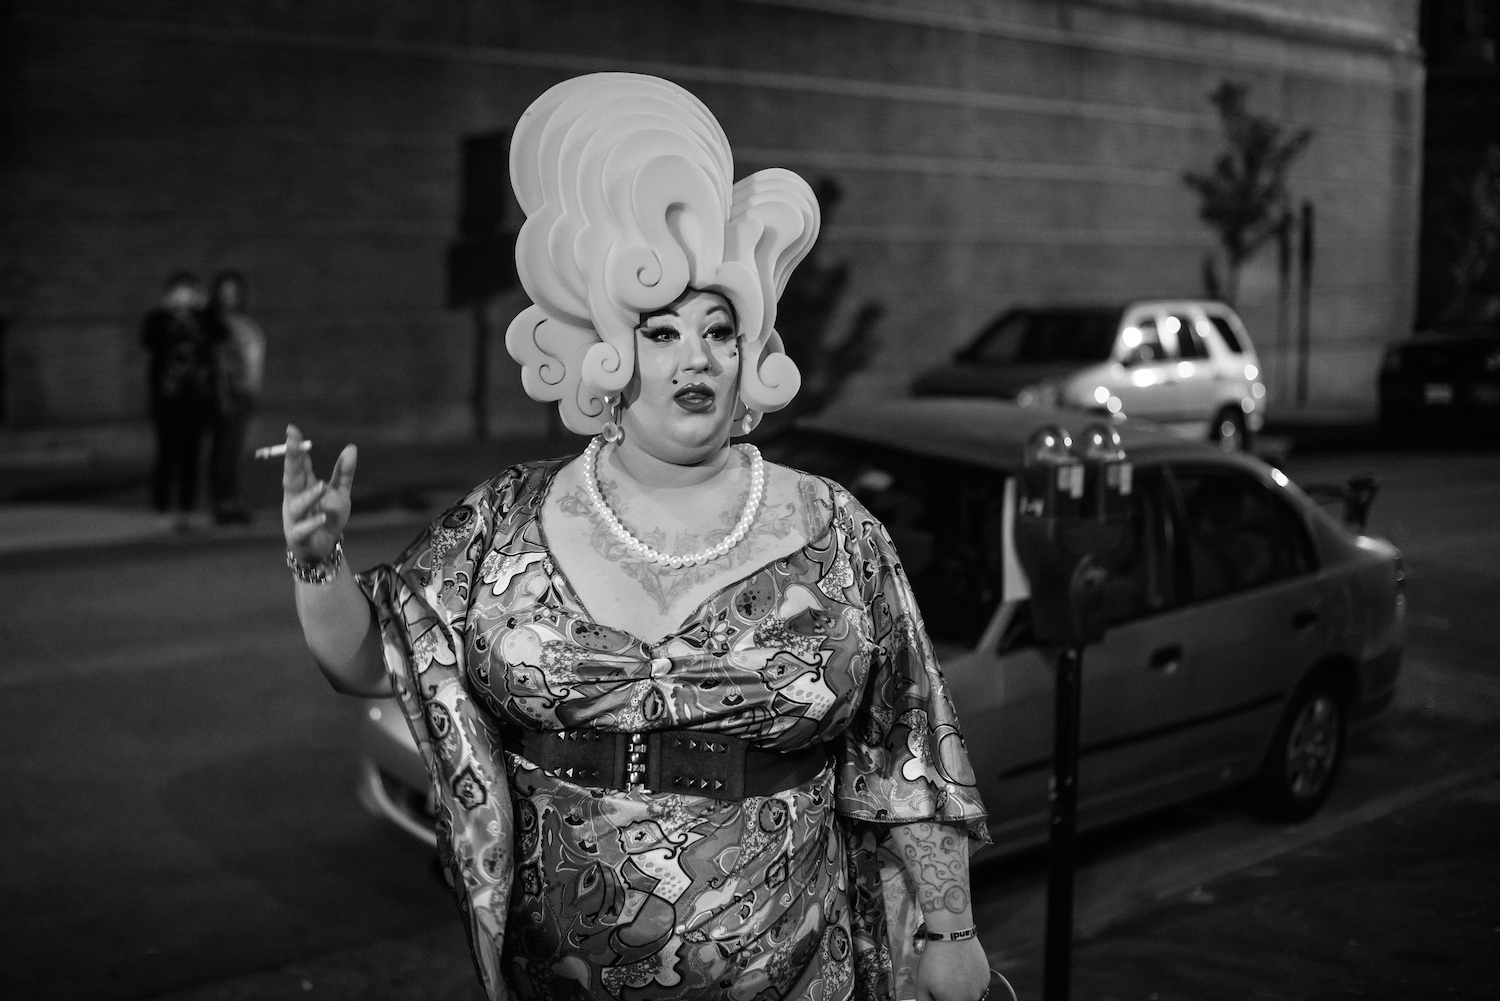 Miss Eon, drag queen, takes a drag outside the Pride Portland kick-off party at Grace Restaurant in Portland on June 10, 2016.